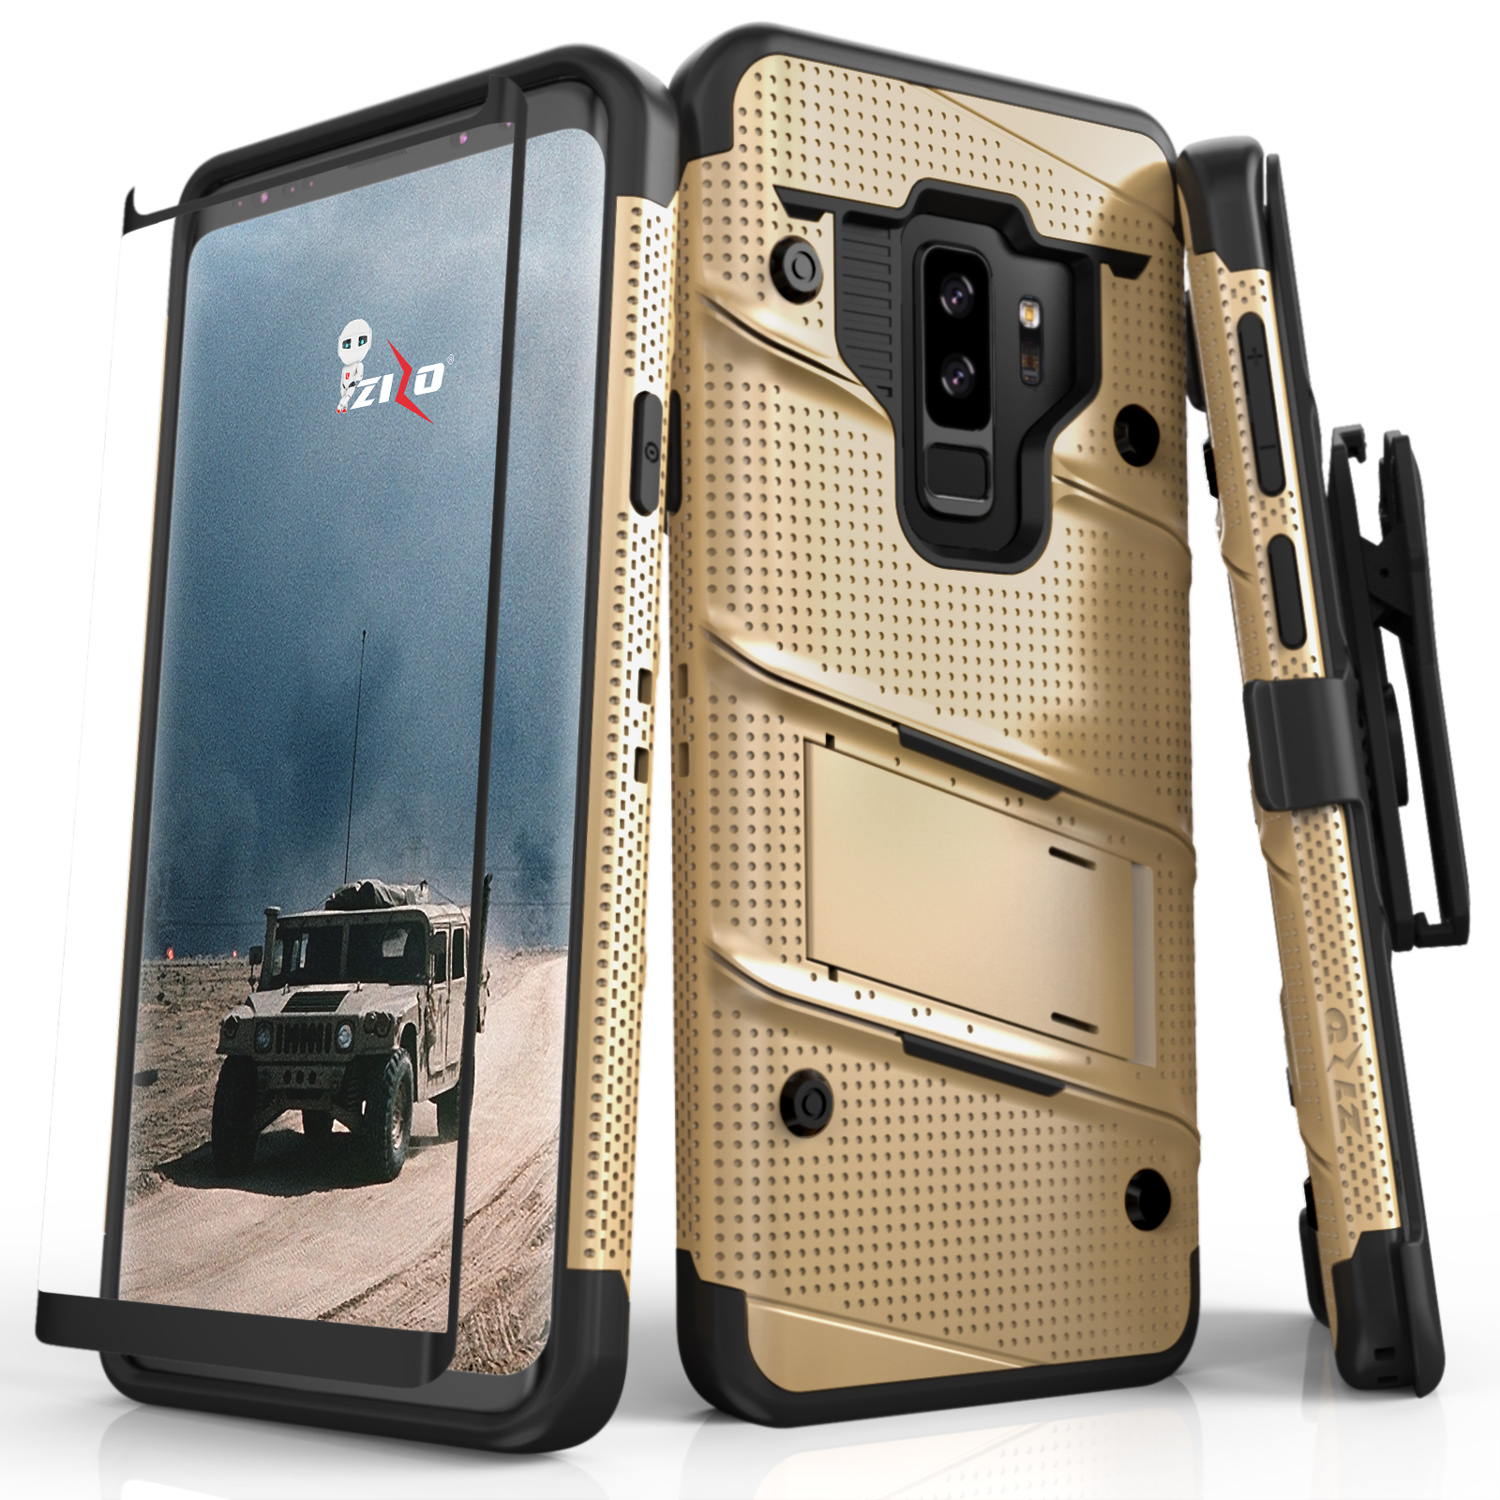 huge discount 8a561 9167a Samsung Galaxy S9 Plus - BOLT Case Cover With Kickstand Holster Full Curved  Glass Screen Protector, Lanyard - Gold